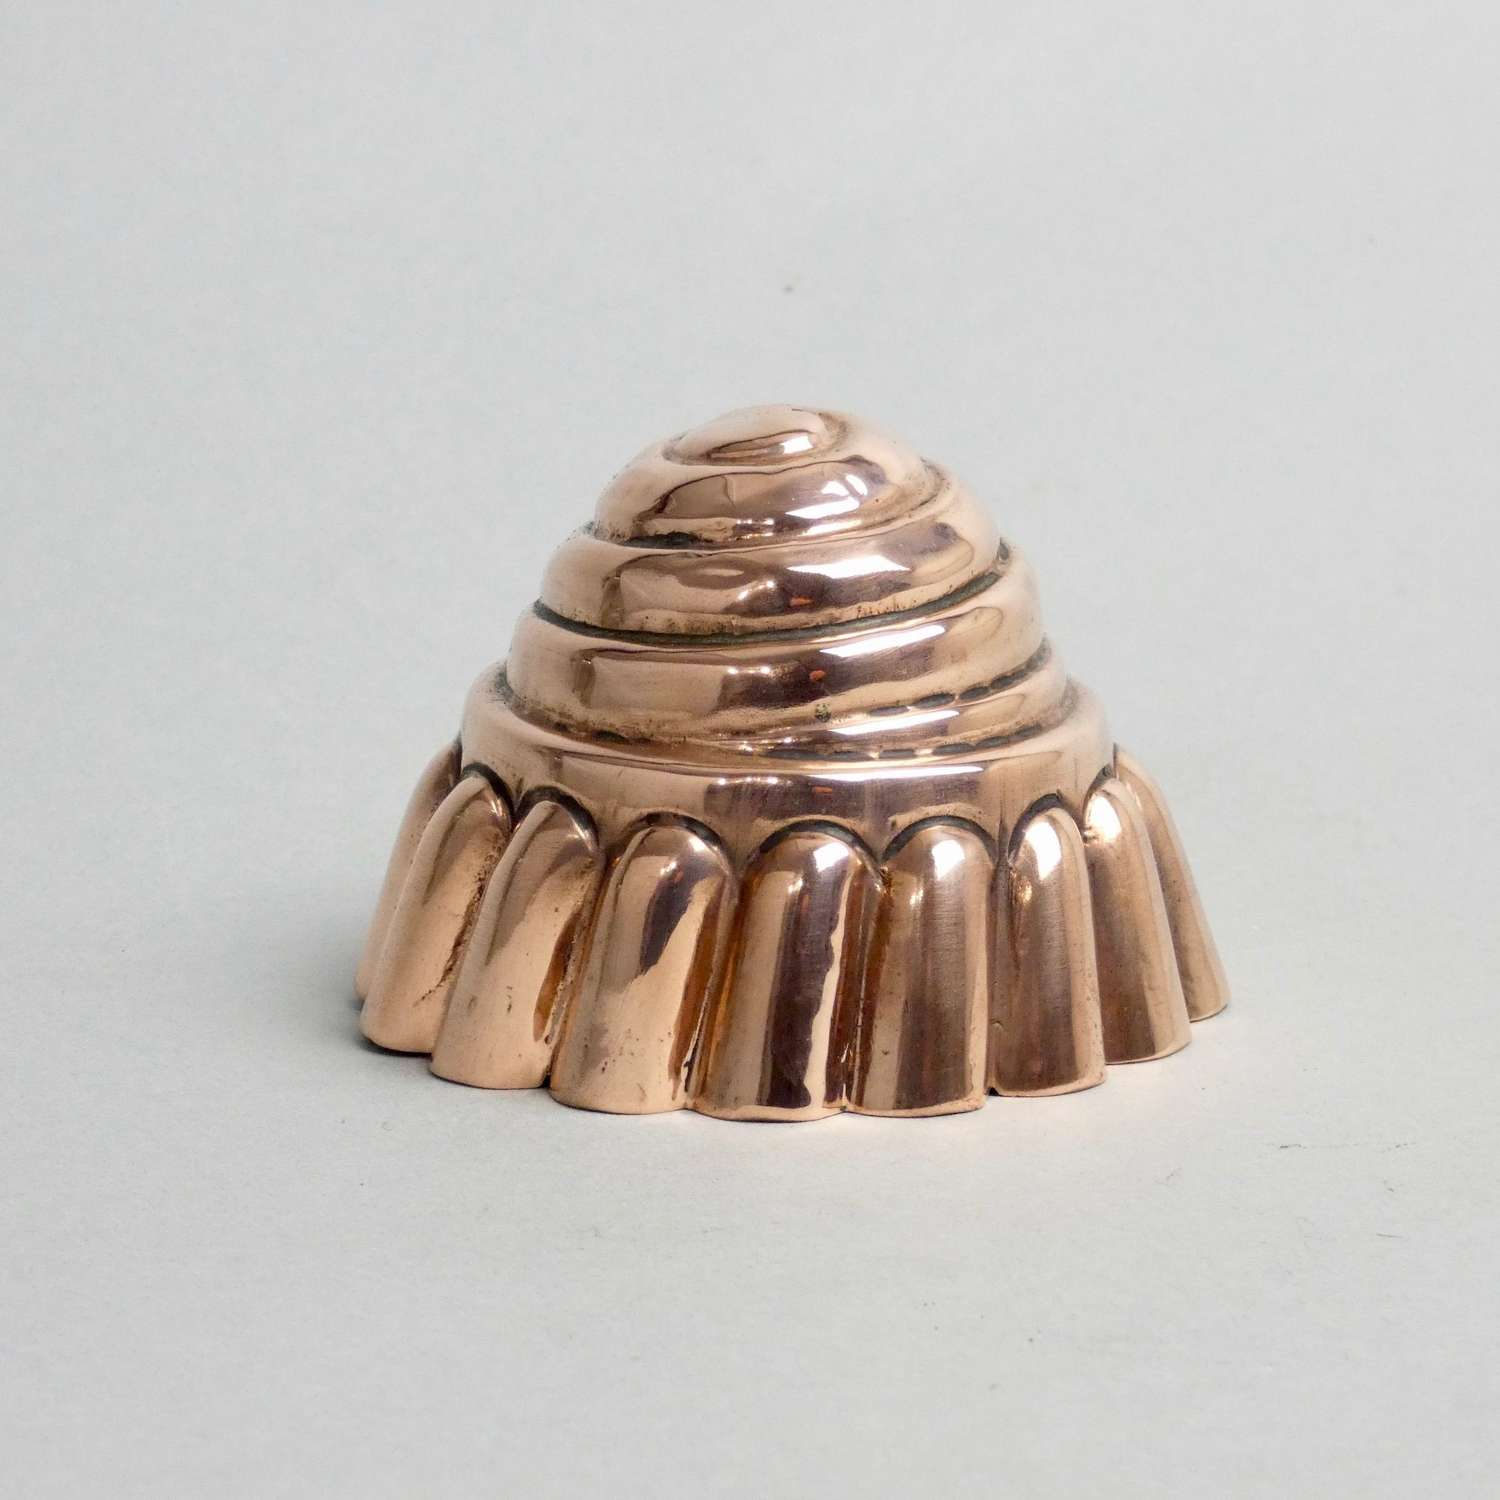 Small, spiral form copper mould.